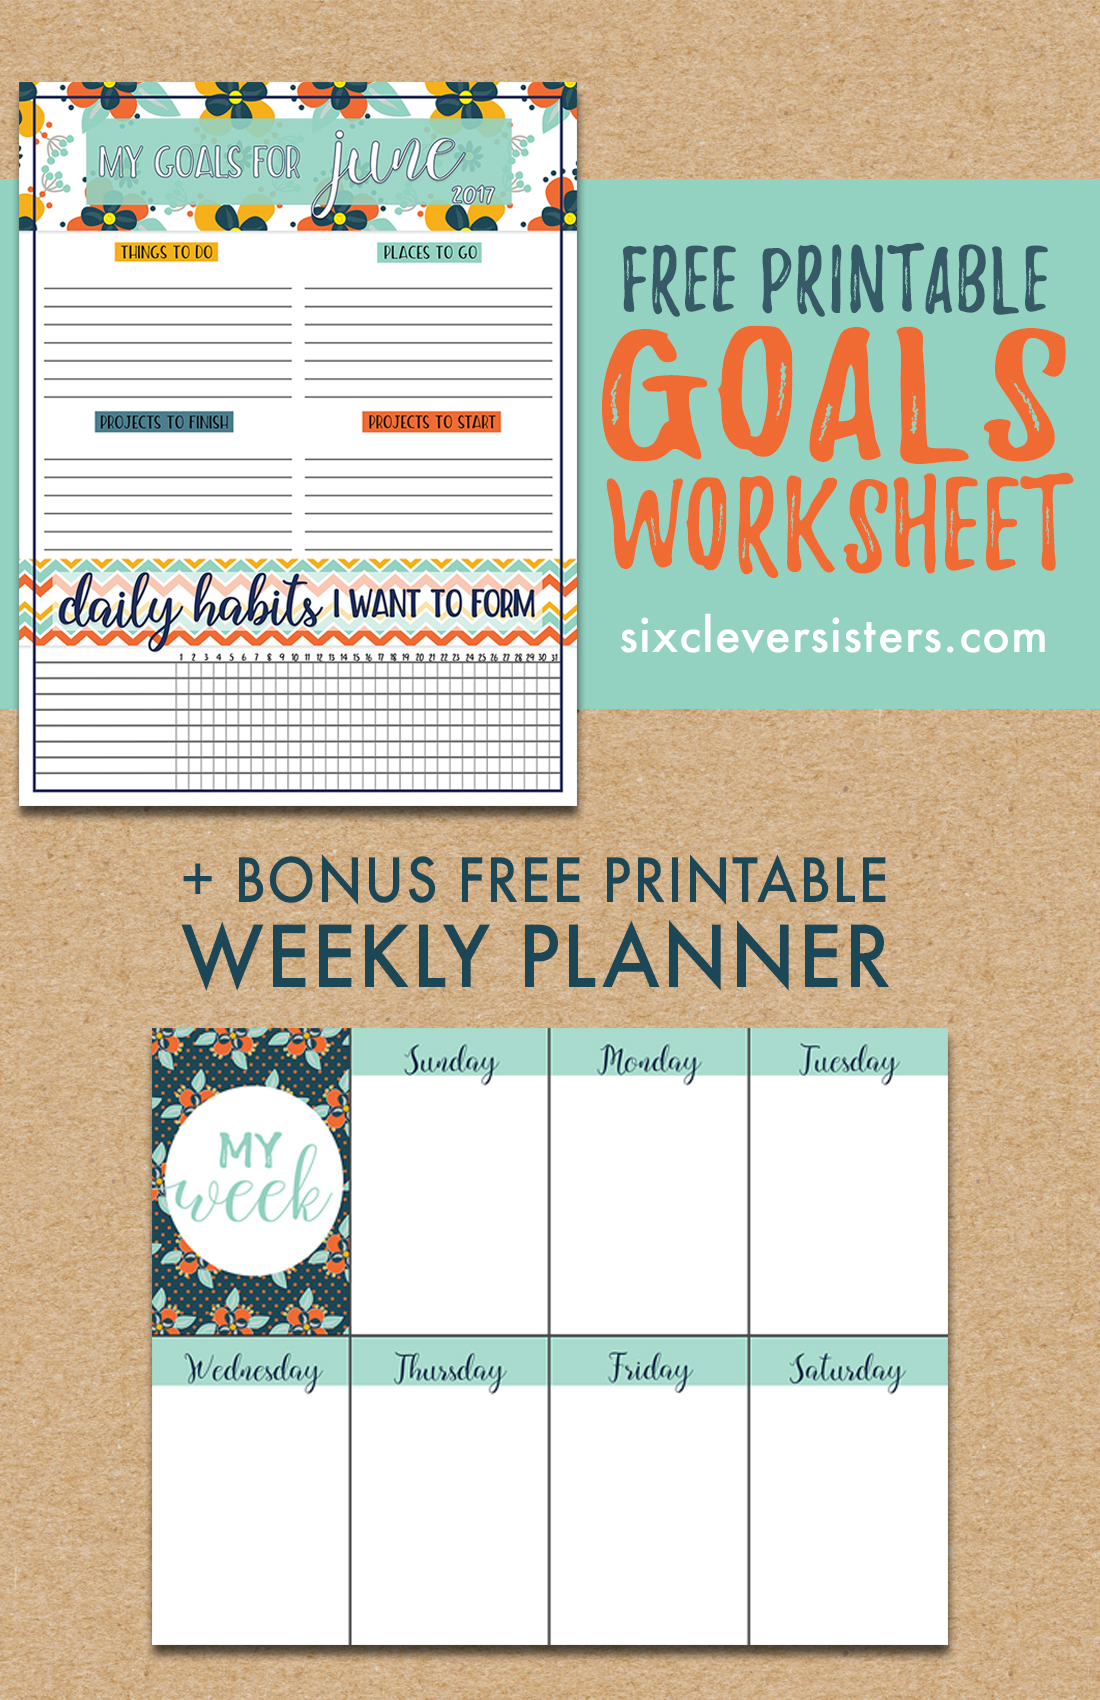 free download goals worksheet printable june 2017 six clever sisters. Black Bedroom Furniture Sets. Home Design Ideas